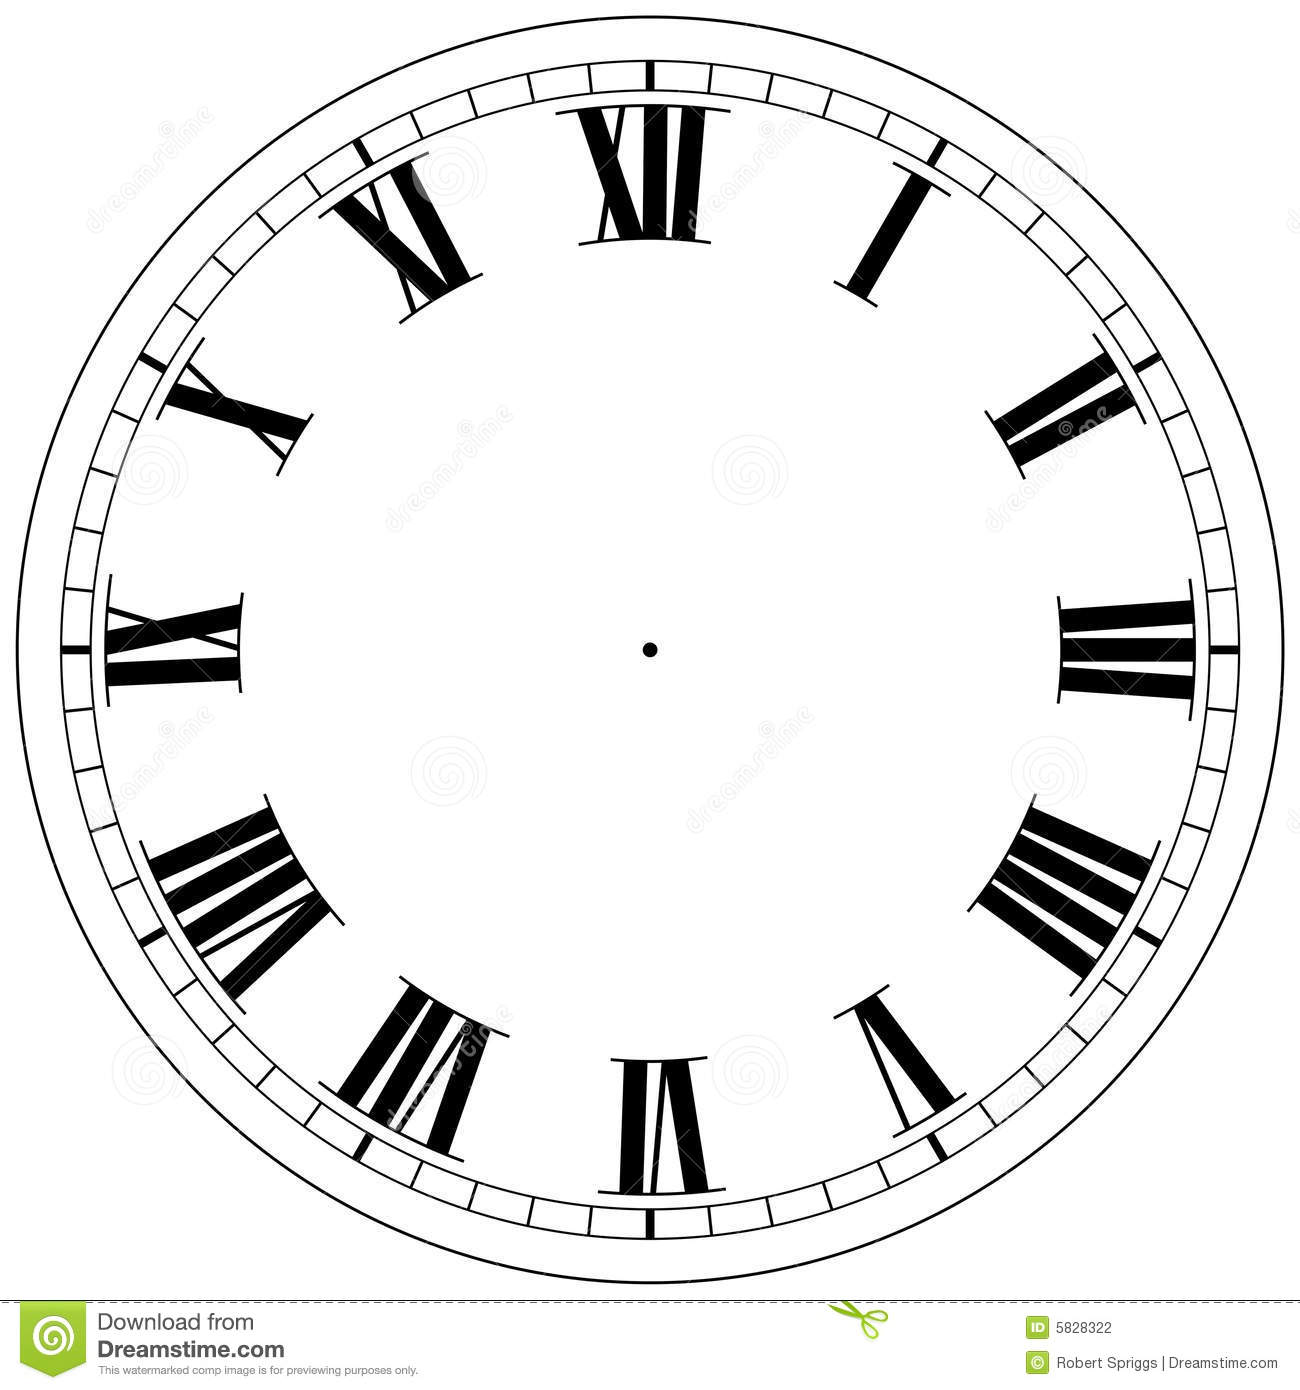 worksheet Clock Face Template vintage clock face template stock vector image 32295527 photography